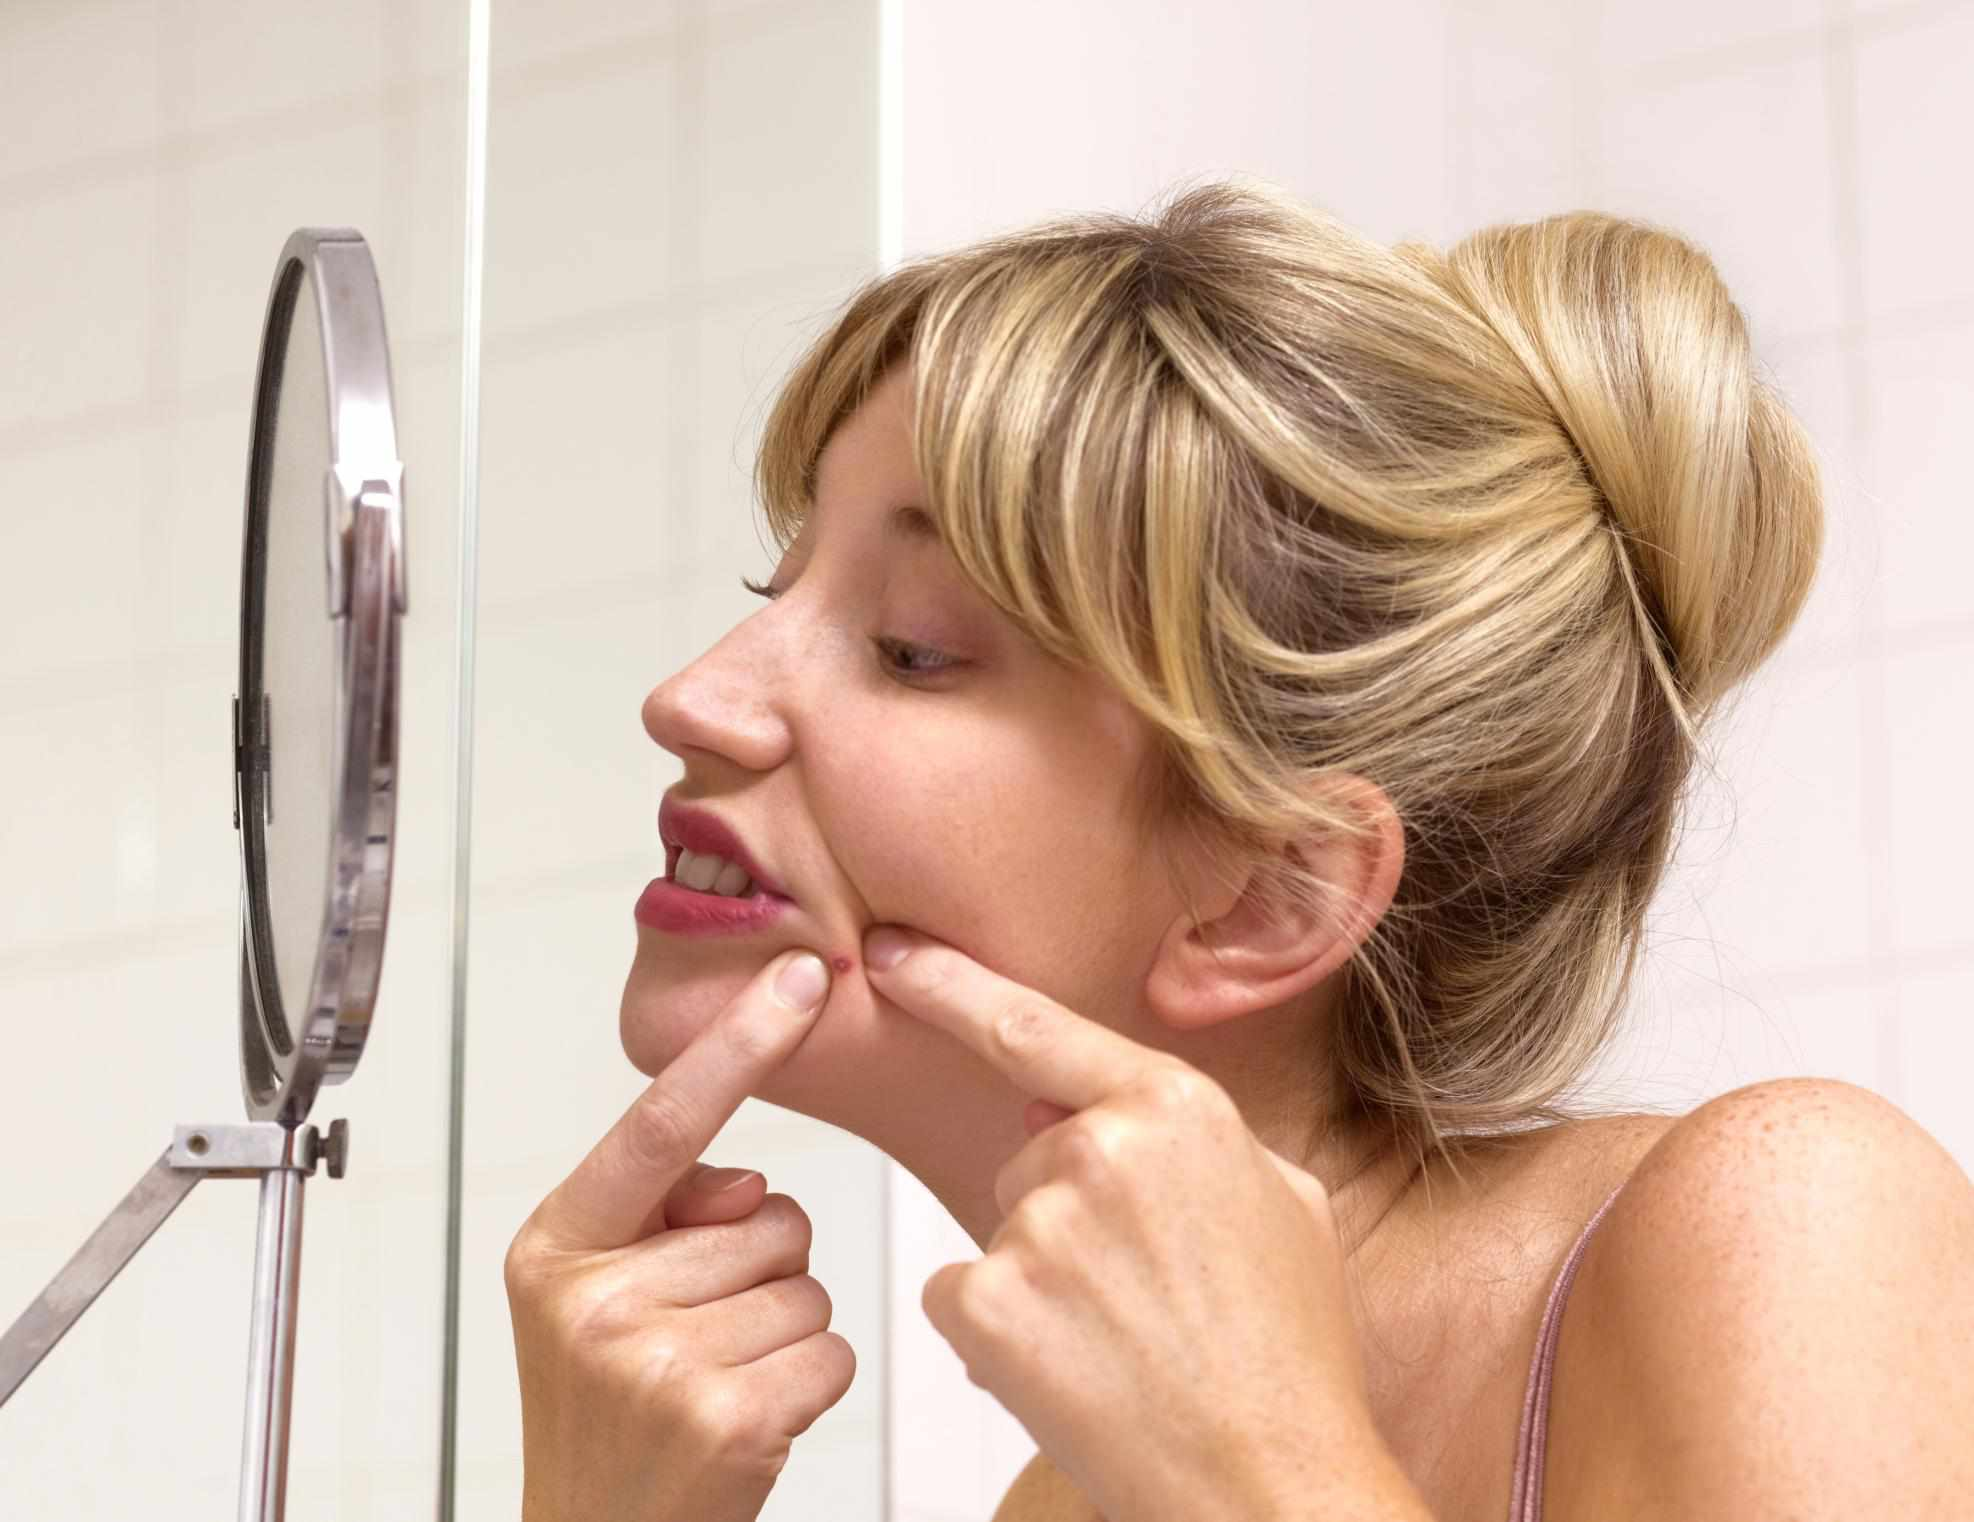 What You Should Not Do to Acne Skin